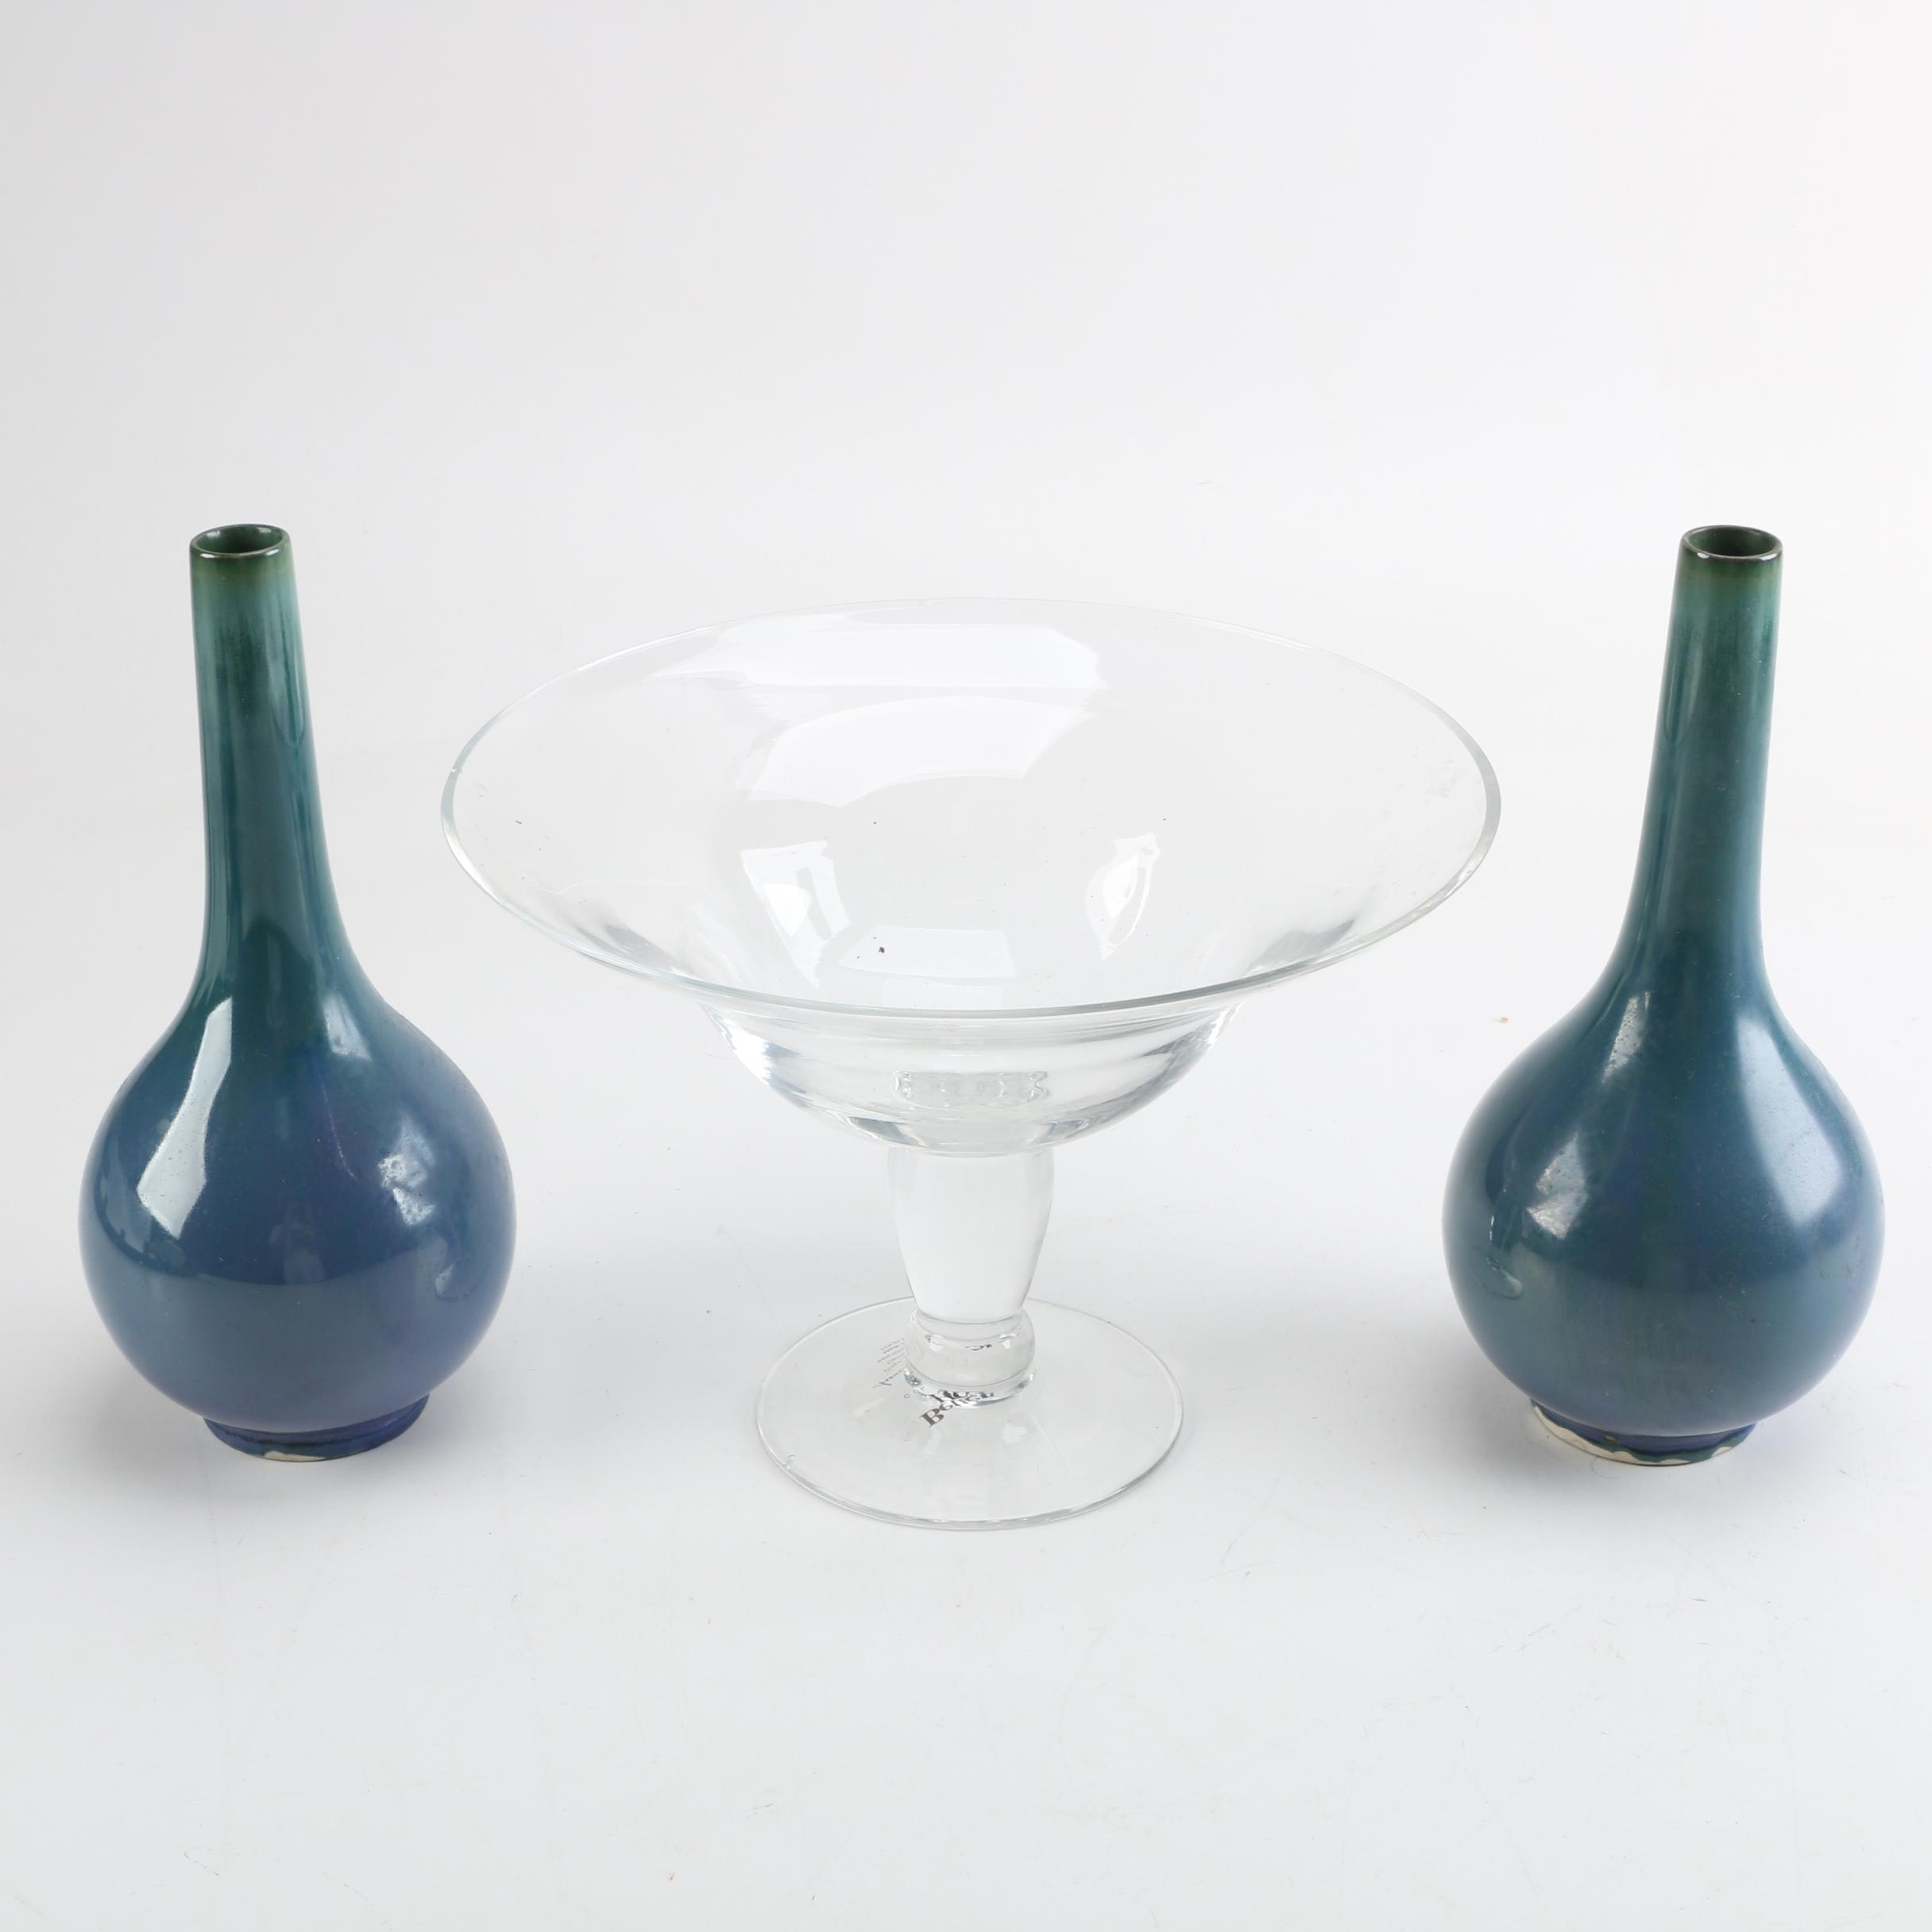 Better Homes and Gardens Footed Clear Glass Bowl and Two Ceramic Vases